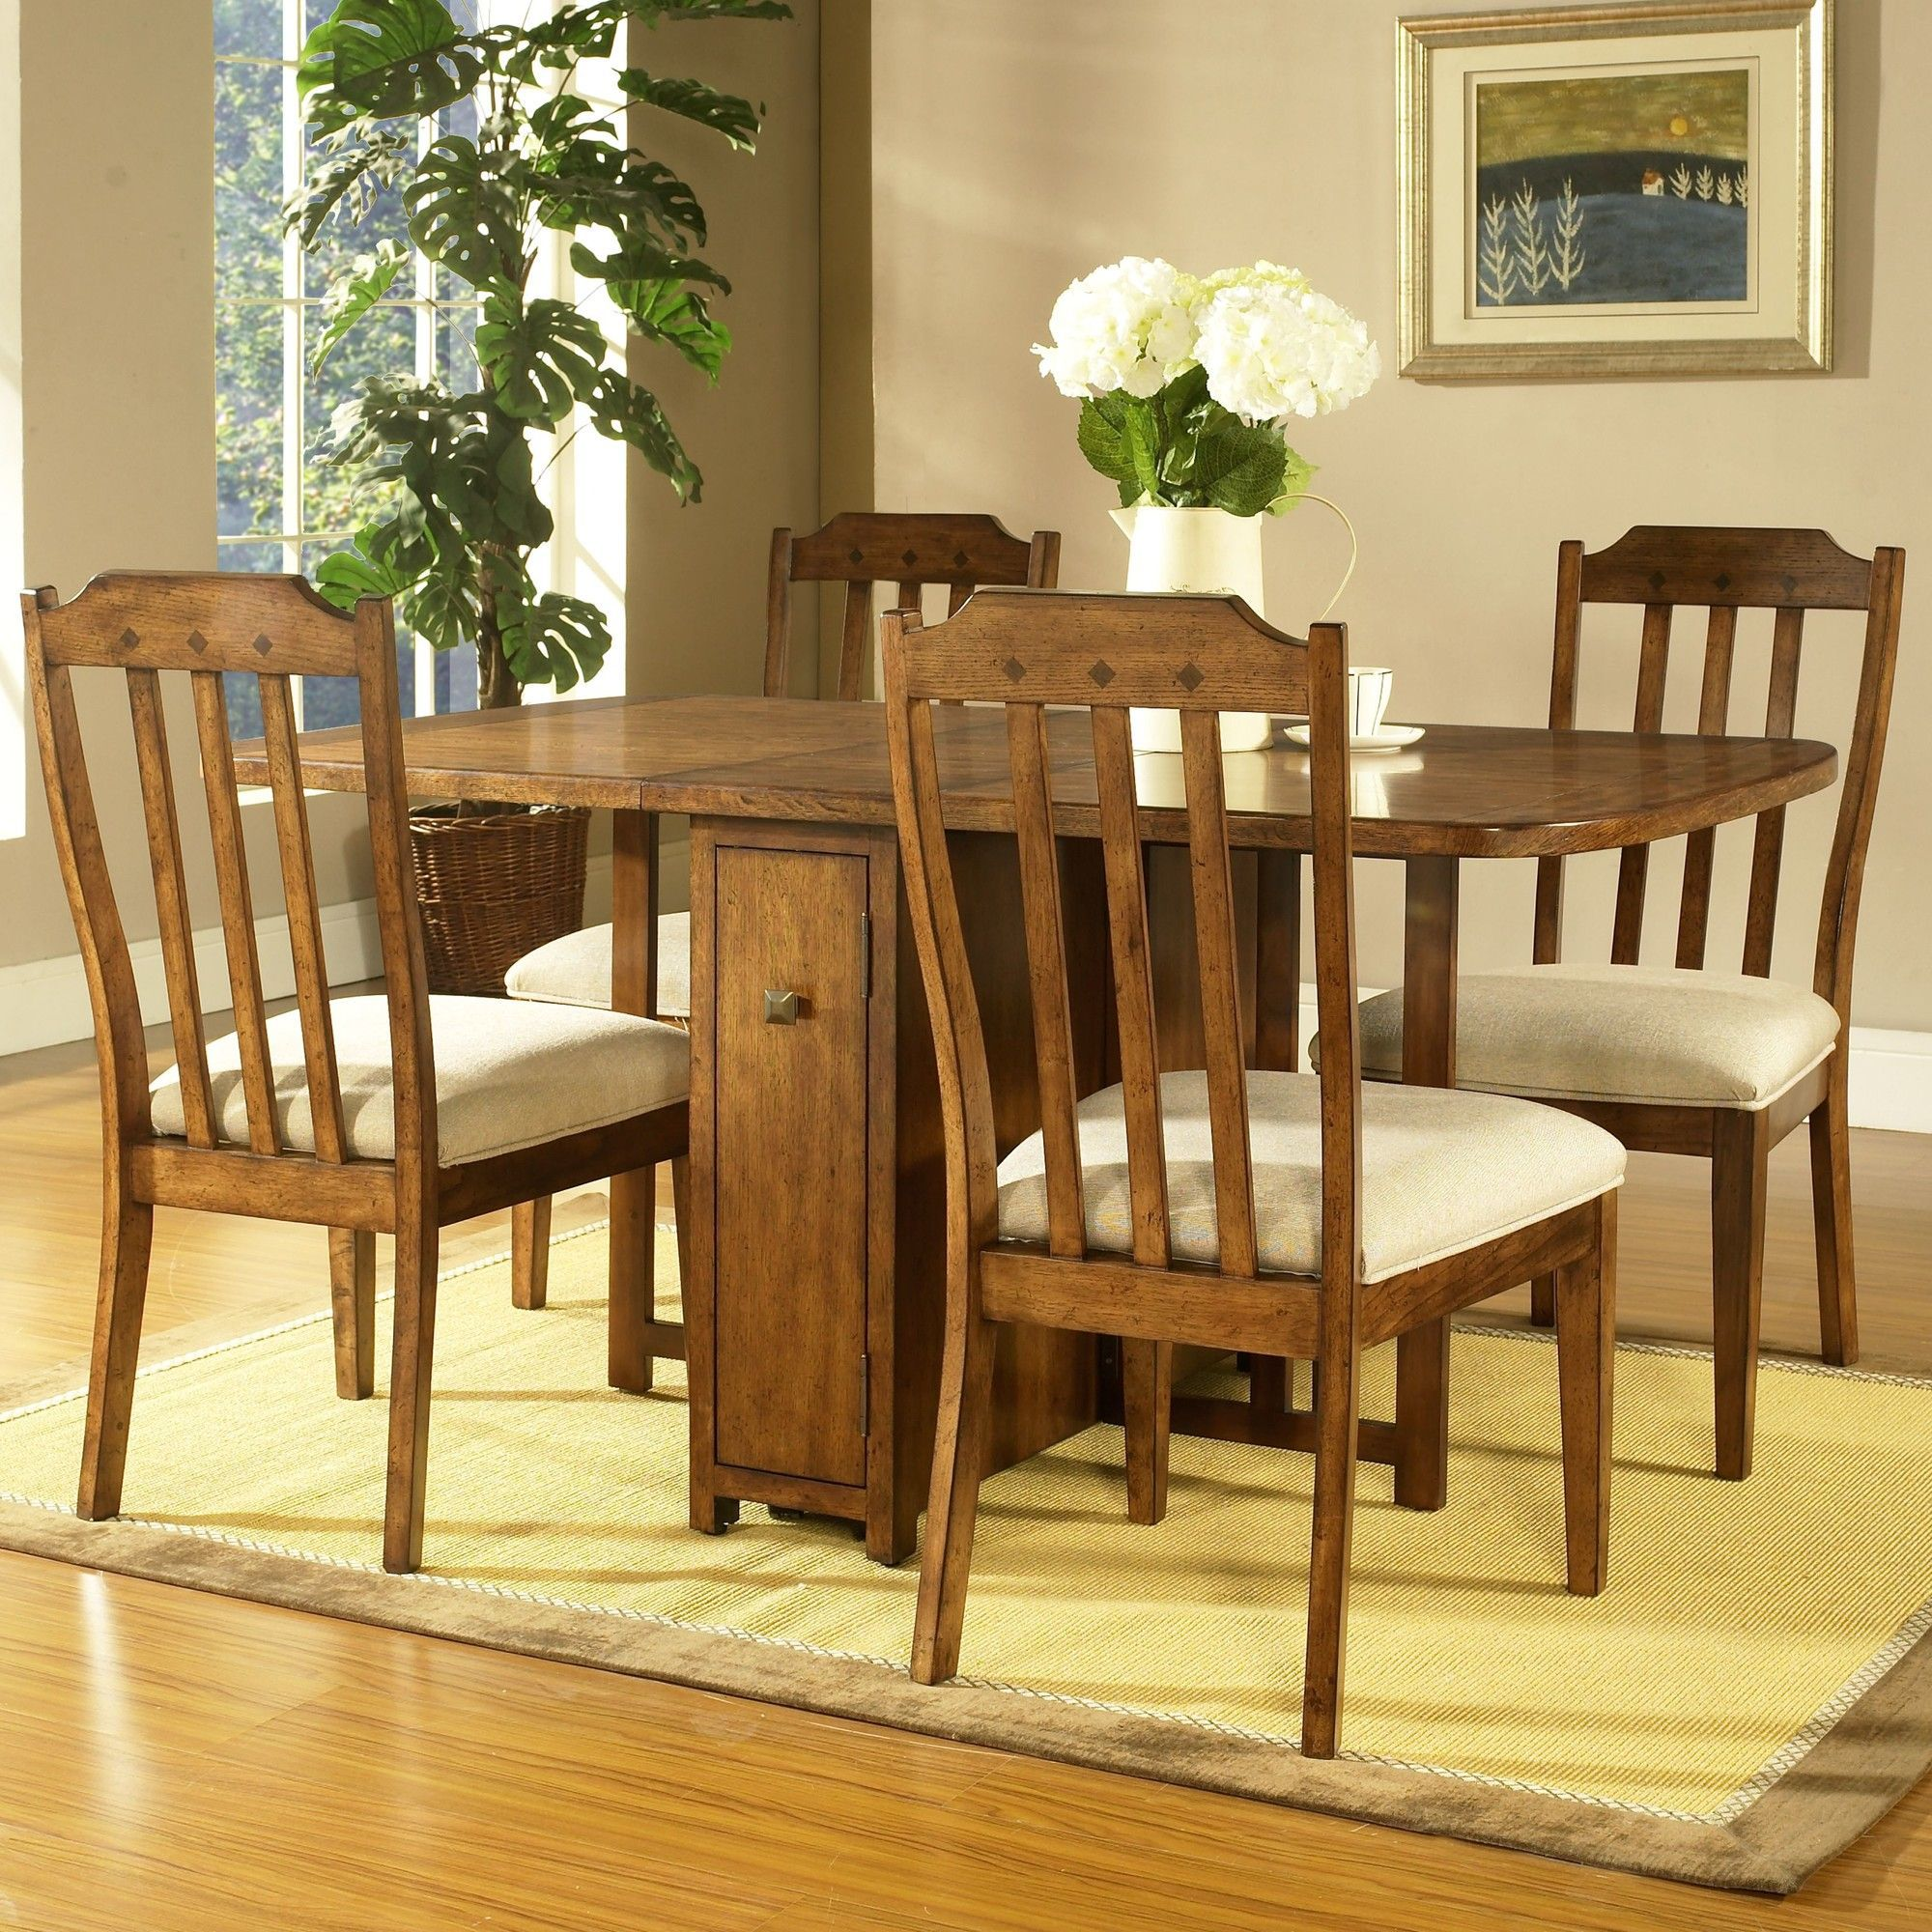 Craftsman Dining Table  Products  Pinterest  Craftsman Dining Pleasing Dining Room Table For 2 Design Ideas